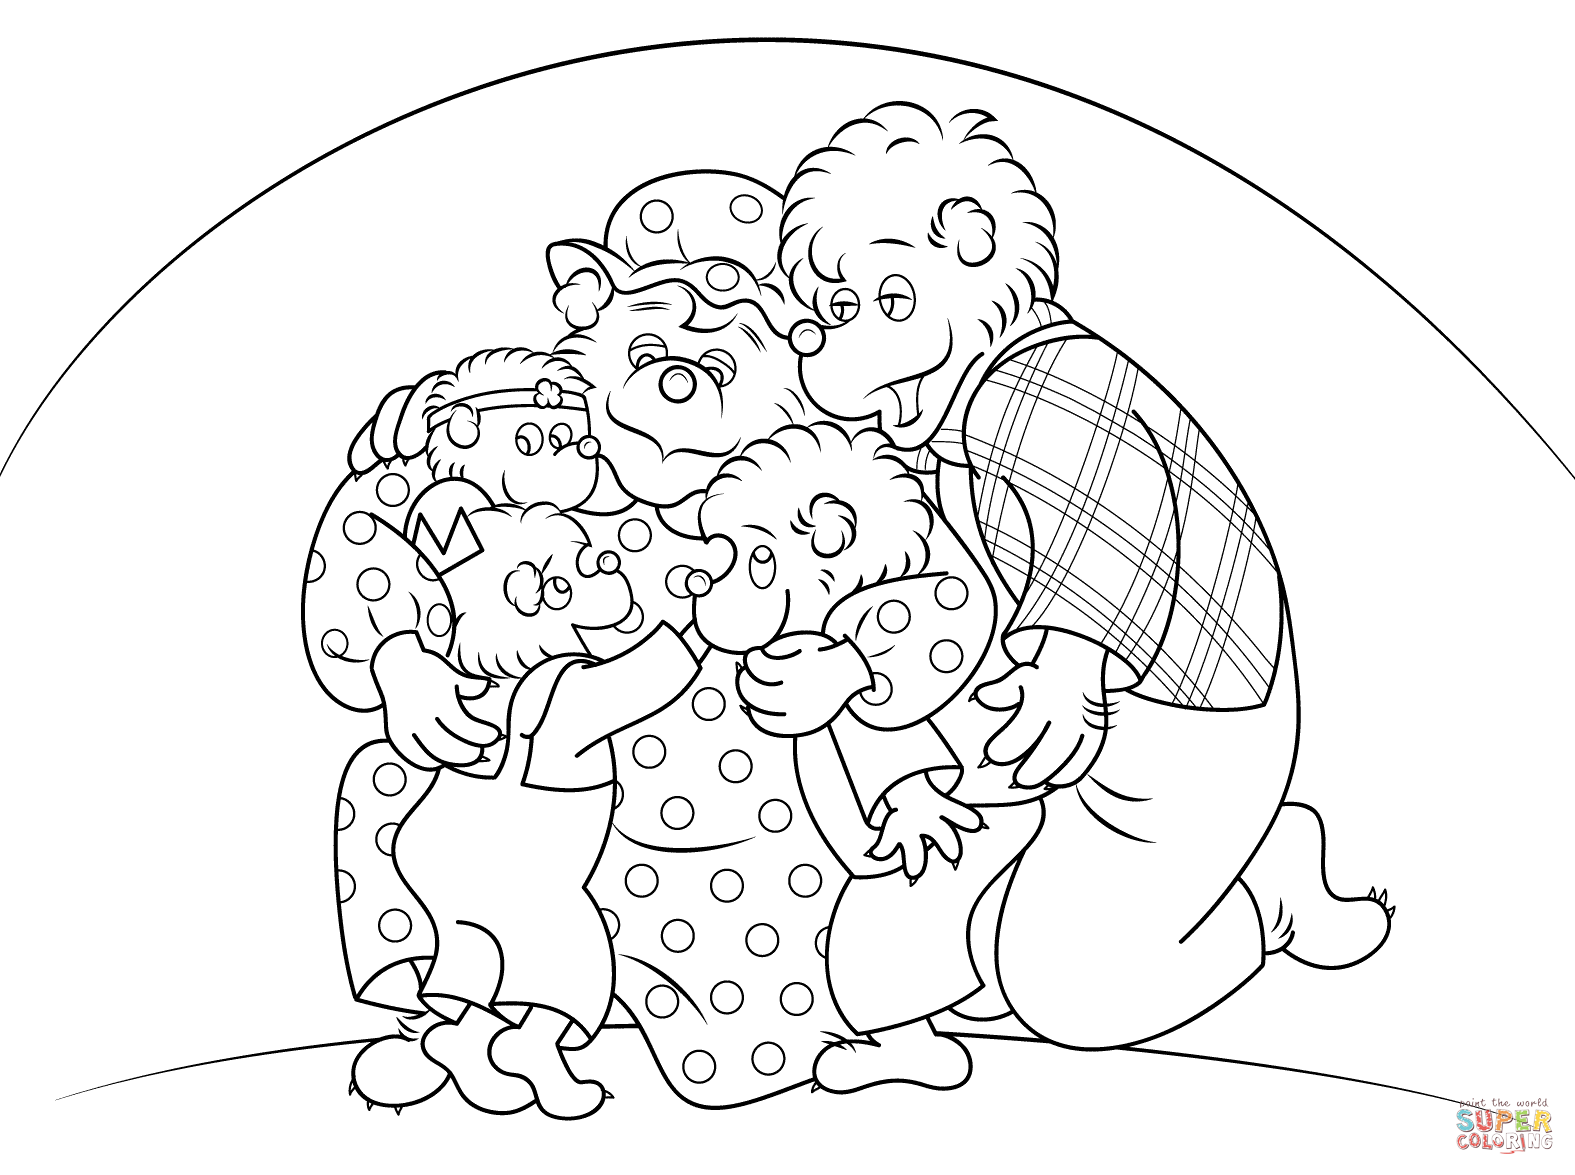 Berenstain Bears Coloring Page - Coloring Home